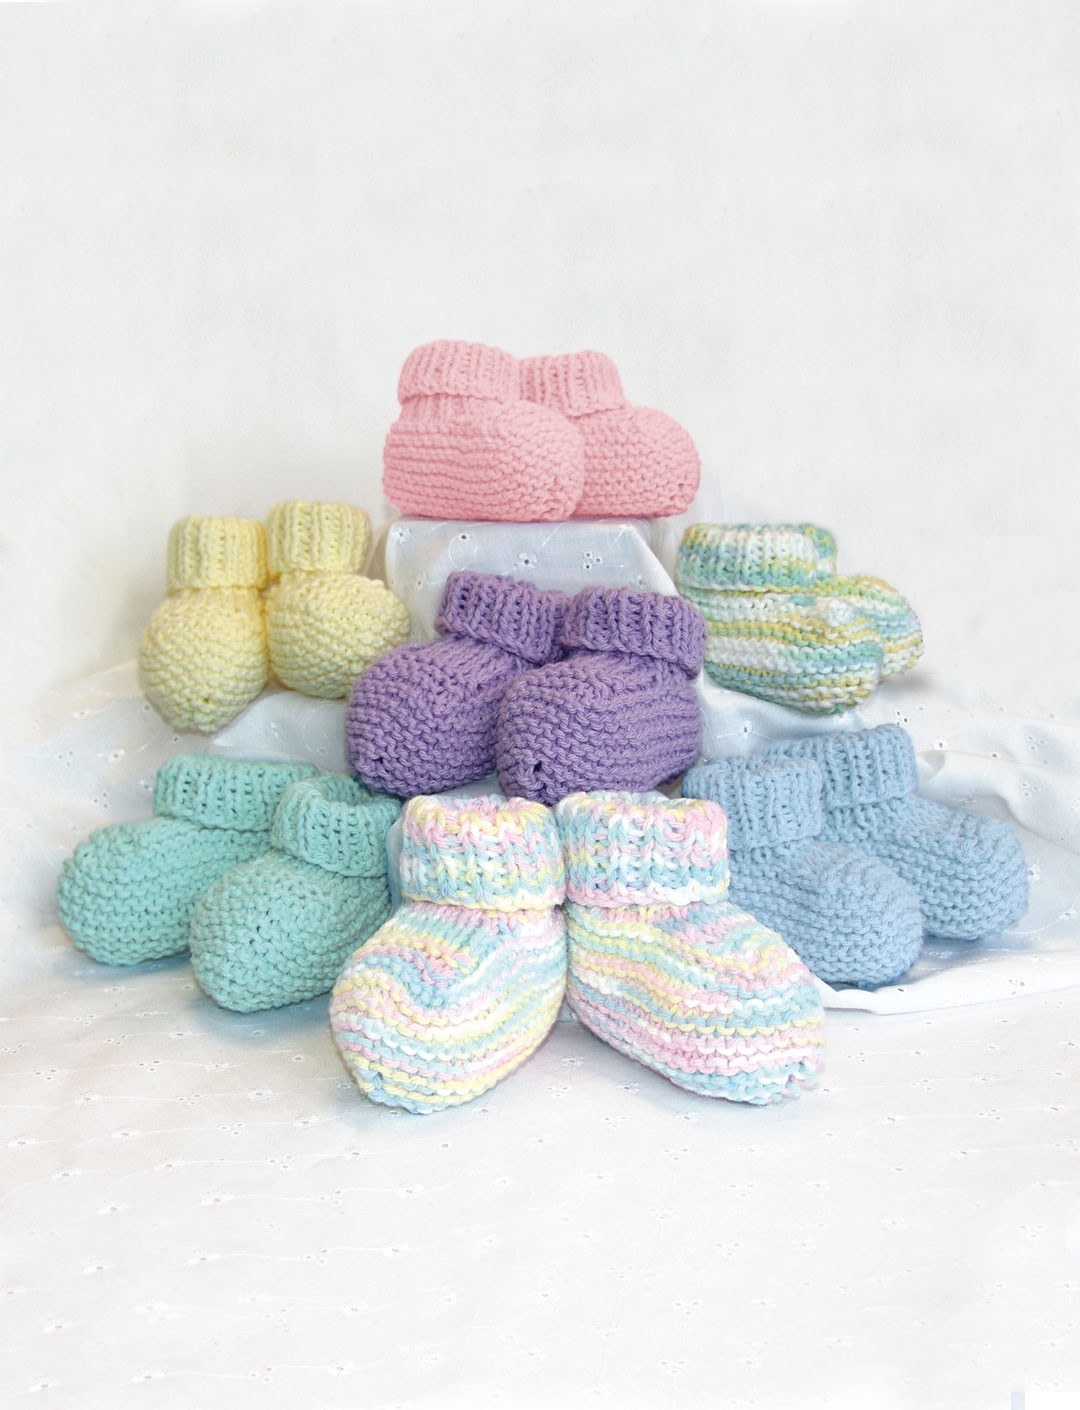 Easy Knitting Patterns Best Of Knit Bibs and Booties Patterns Of Superb 44 Ideas Easy Knitting Patterns